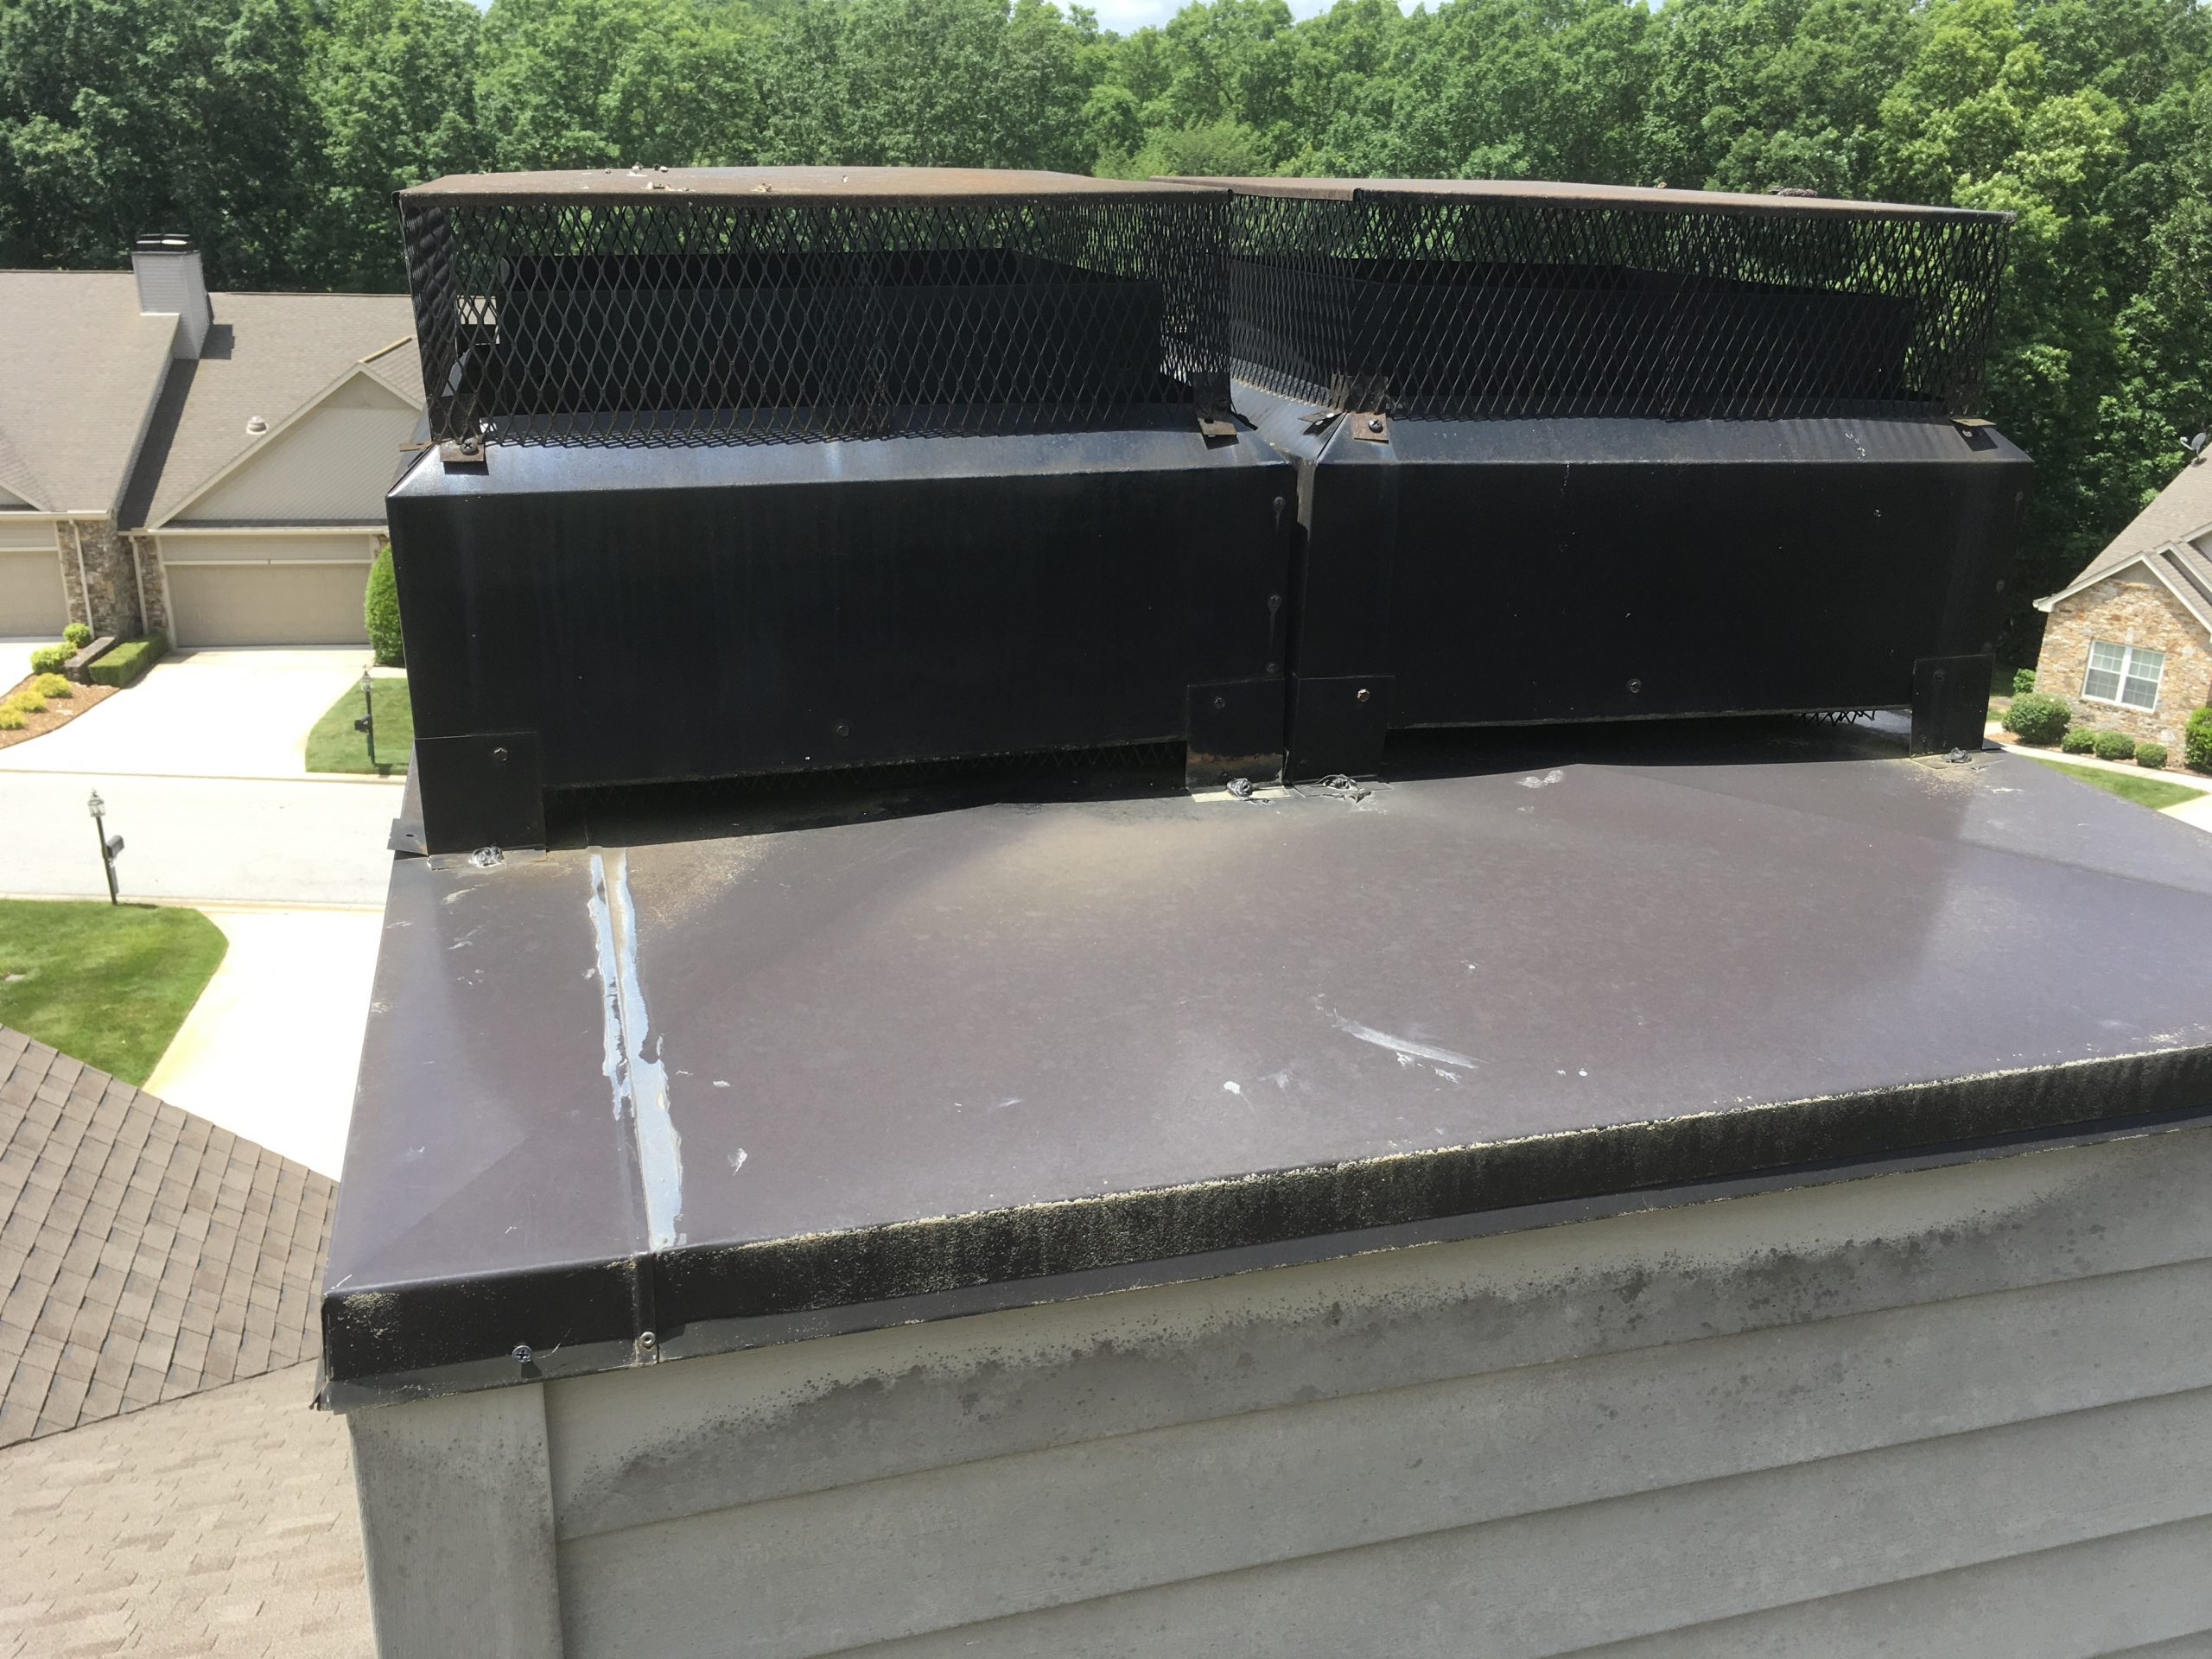 this is a picture of a chimney cap that could possibly leak